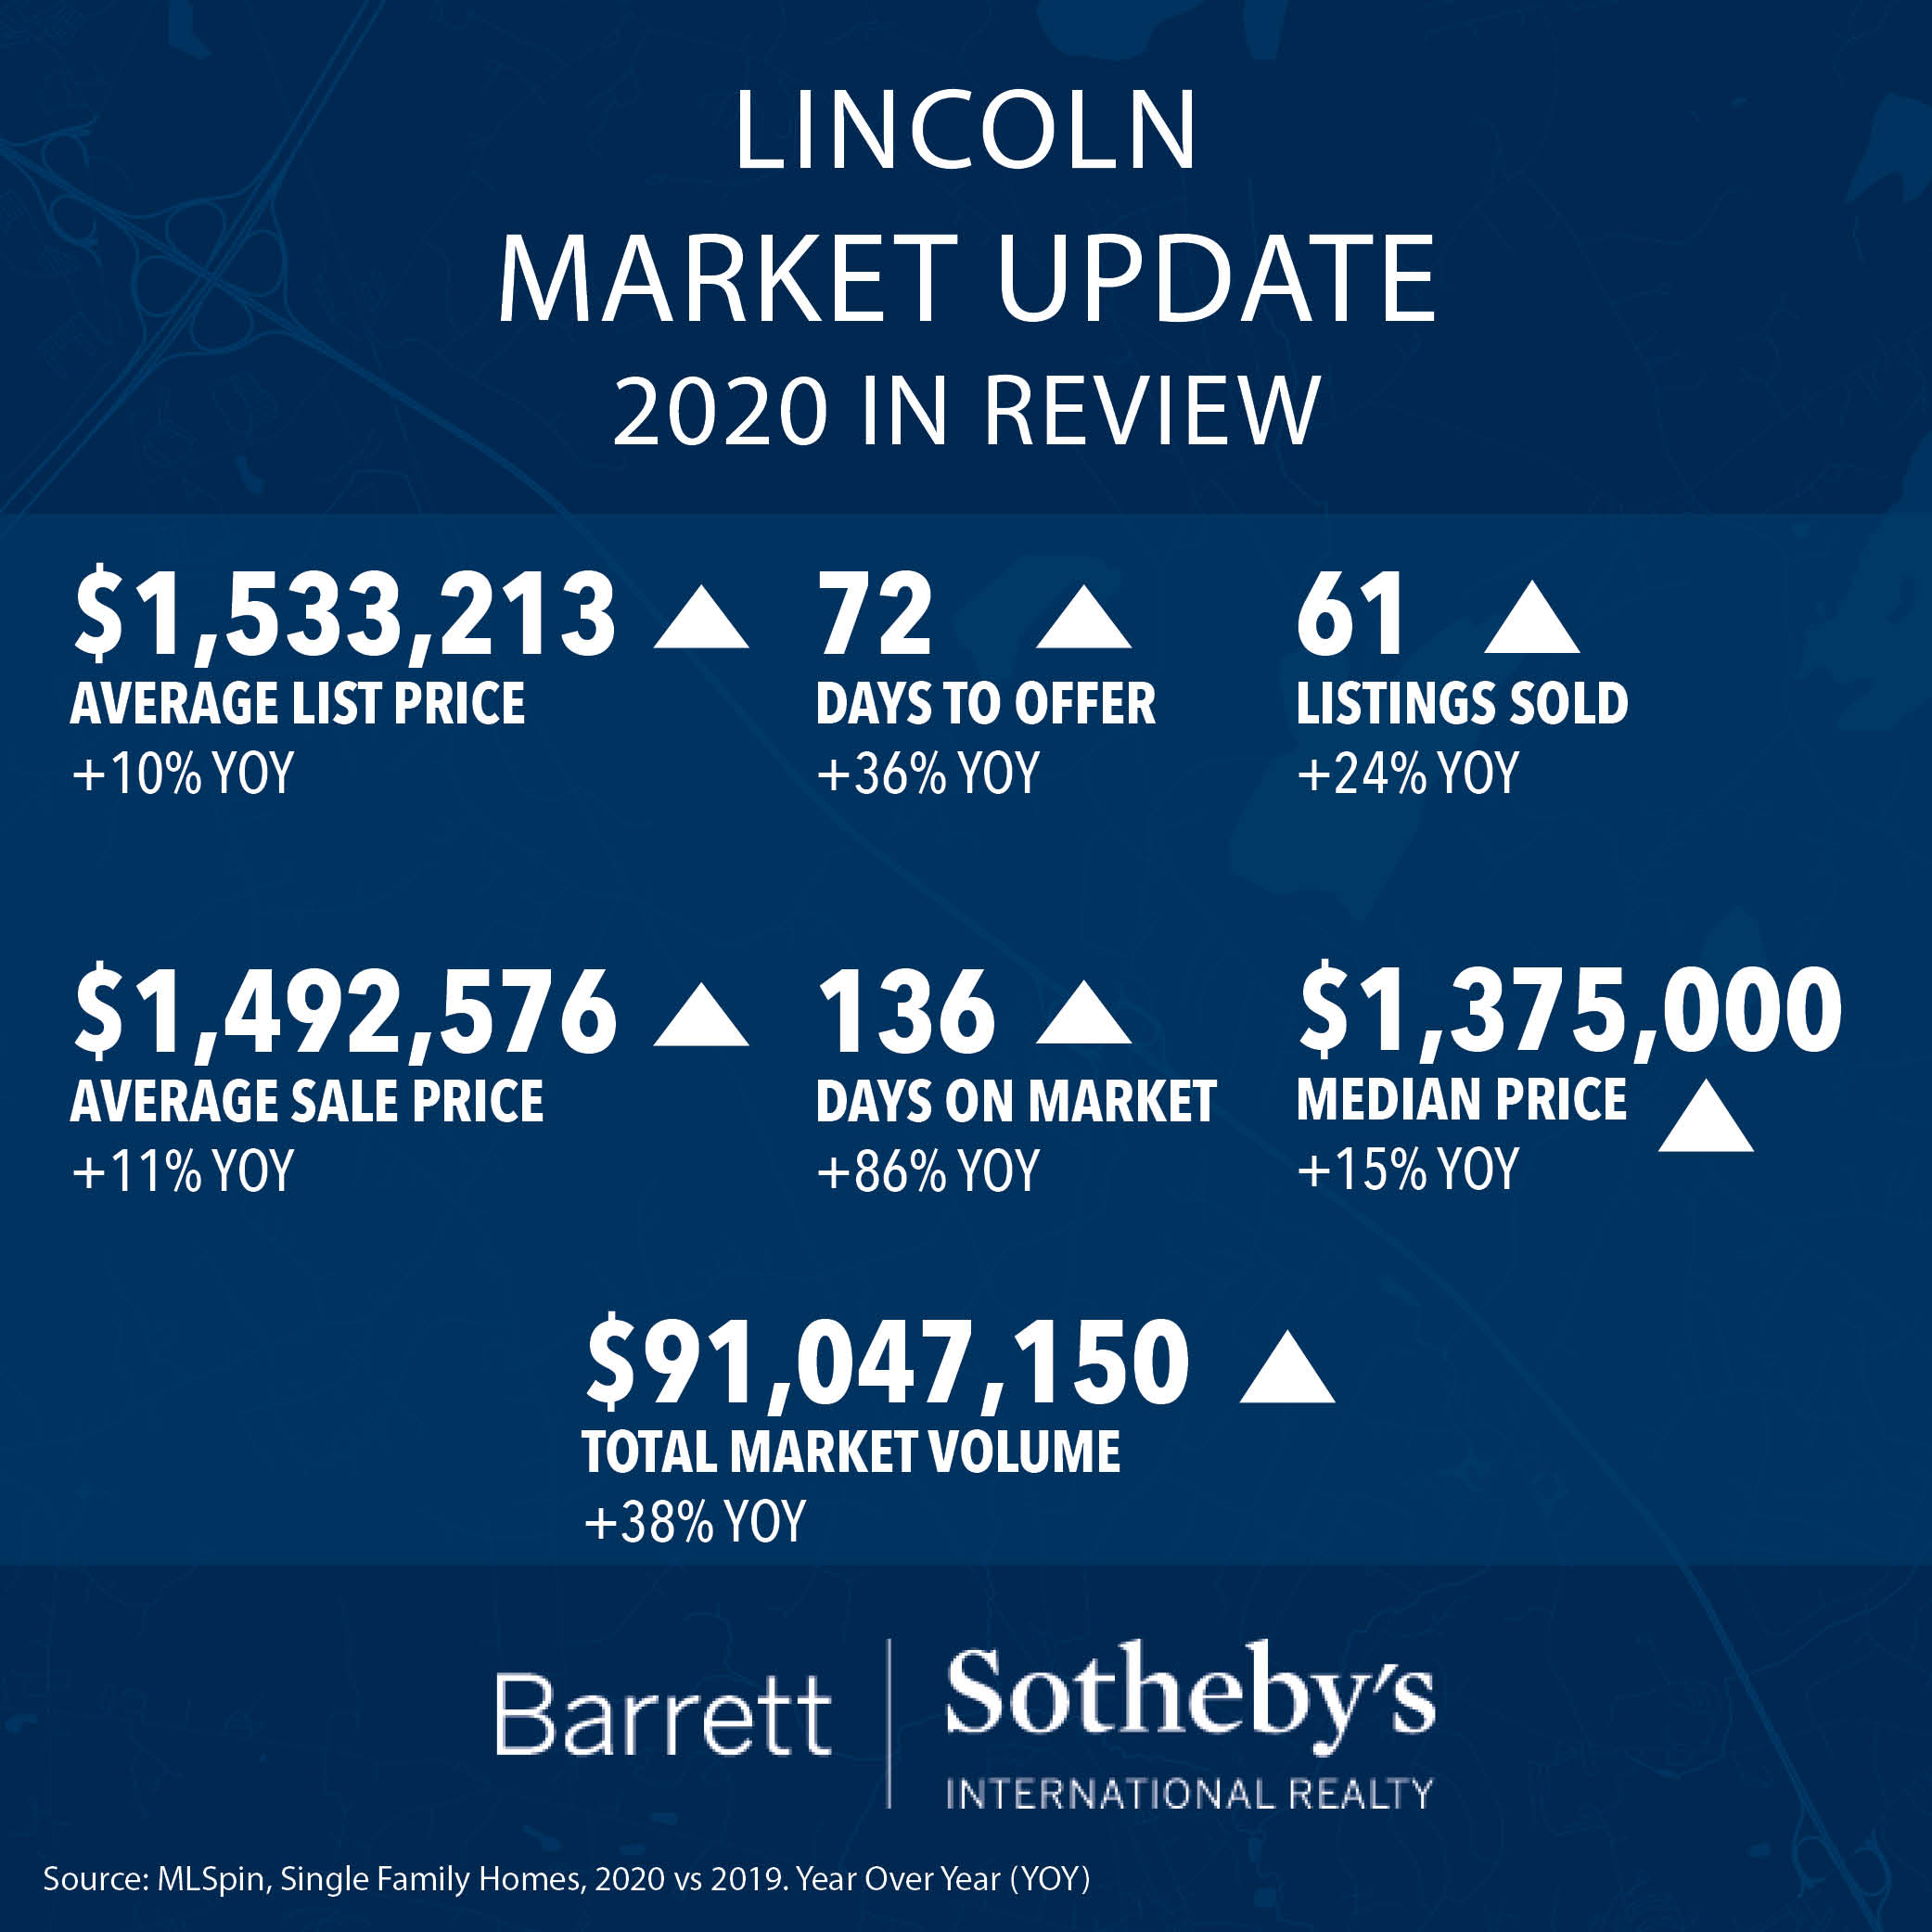 Lincoln Market Update: 2020 in Review